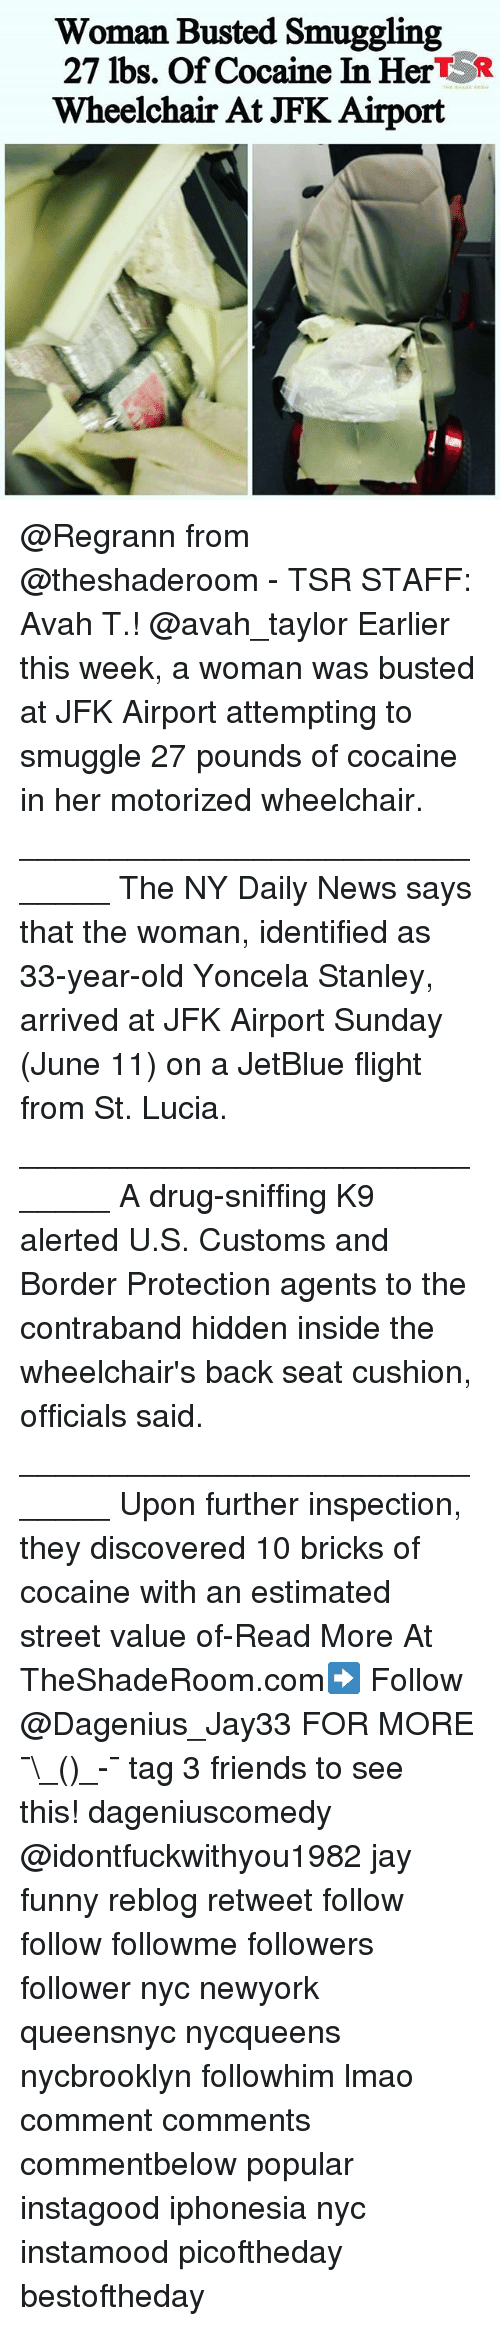 Friends, Funny, and Jay: Woman Busted Smuggling  27 lbs. Of cocaine In HertSR  Wheelchair At JFK Airport @Regrann from @theshaderoom - TSR STAFF: Avah T.! @avah_taylor Earlier this week, a woman was busted at JFK Airport attempting to smuggle 27 pounds of cocaine in her motorized wheelchair. ______________________________ The NY Daily News says that the woman, identified as 33-year-old Yoncela Stanley, arrived at JFK Airport Sunday (June 11) on a JetBlue flight from St. Lucia. ______________________________ A drug-sniffing K9 alerted U.S. Customs and Border Protection agents to the contraband hidden inside the wheelchair's back seat cushion, officials said. ______________________________ Upon further inspection, they discovered 10 bricks of cocaine with an estimated street value of-Read More At TheShadeRoom.com➡️ Follow @Dagenius_Jay33 FOR MORE ¯\_(ツ)_-¯ tag 3 friends to see this! dageniuscomedy @idontfuckwithyou1982 jay funny reblog retweet follow follow followme followers follower nyc newyork queensnyc nycqueens nycbrooklyn followhim lmao comment comments commentbelow popular instagood iphonesia nyc instamood picoftheday bestoftheday